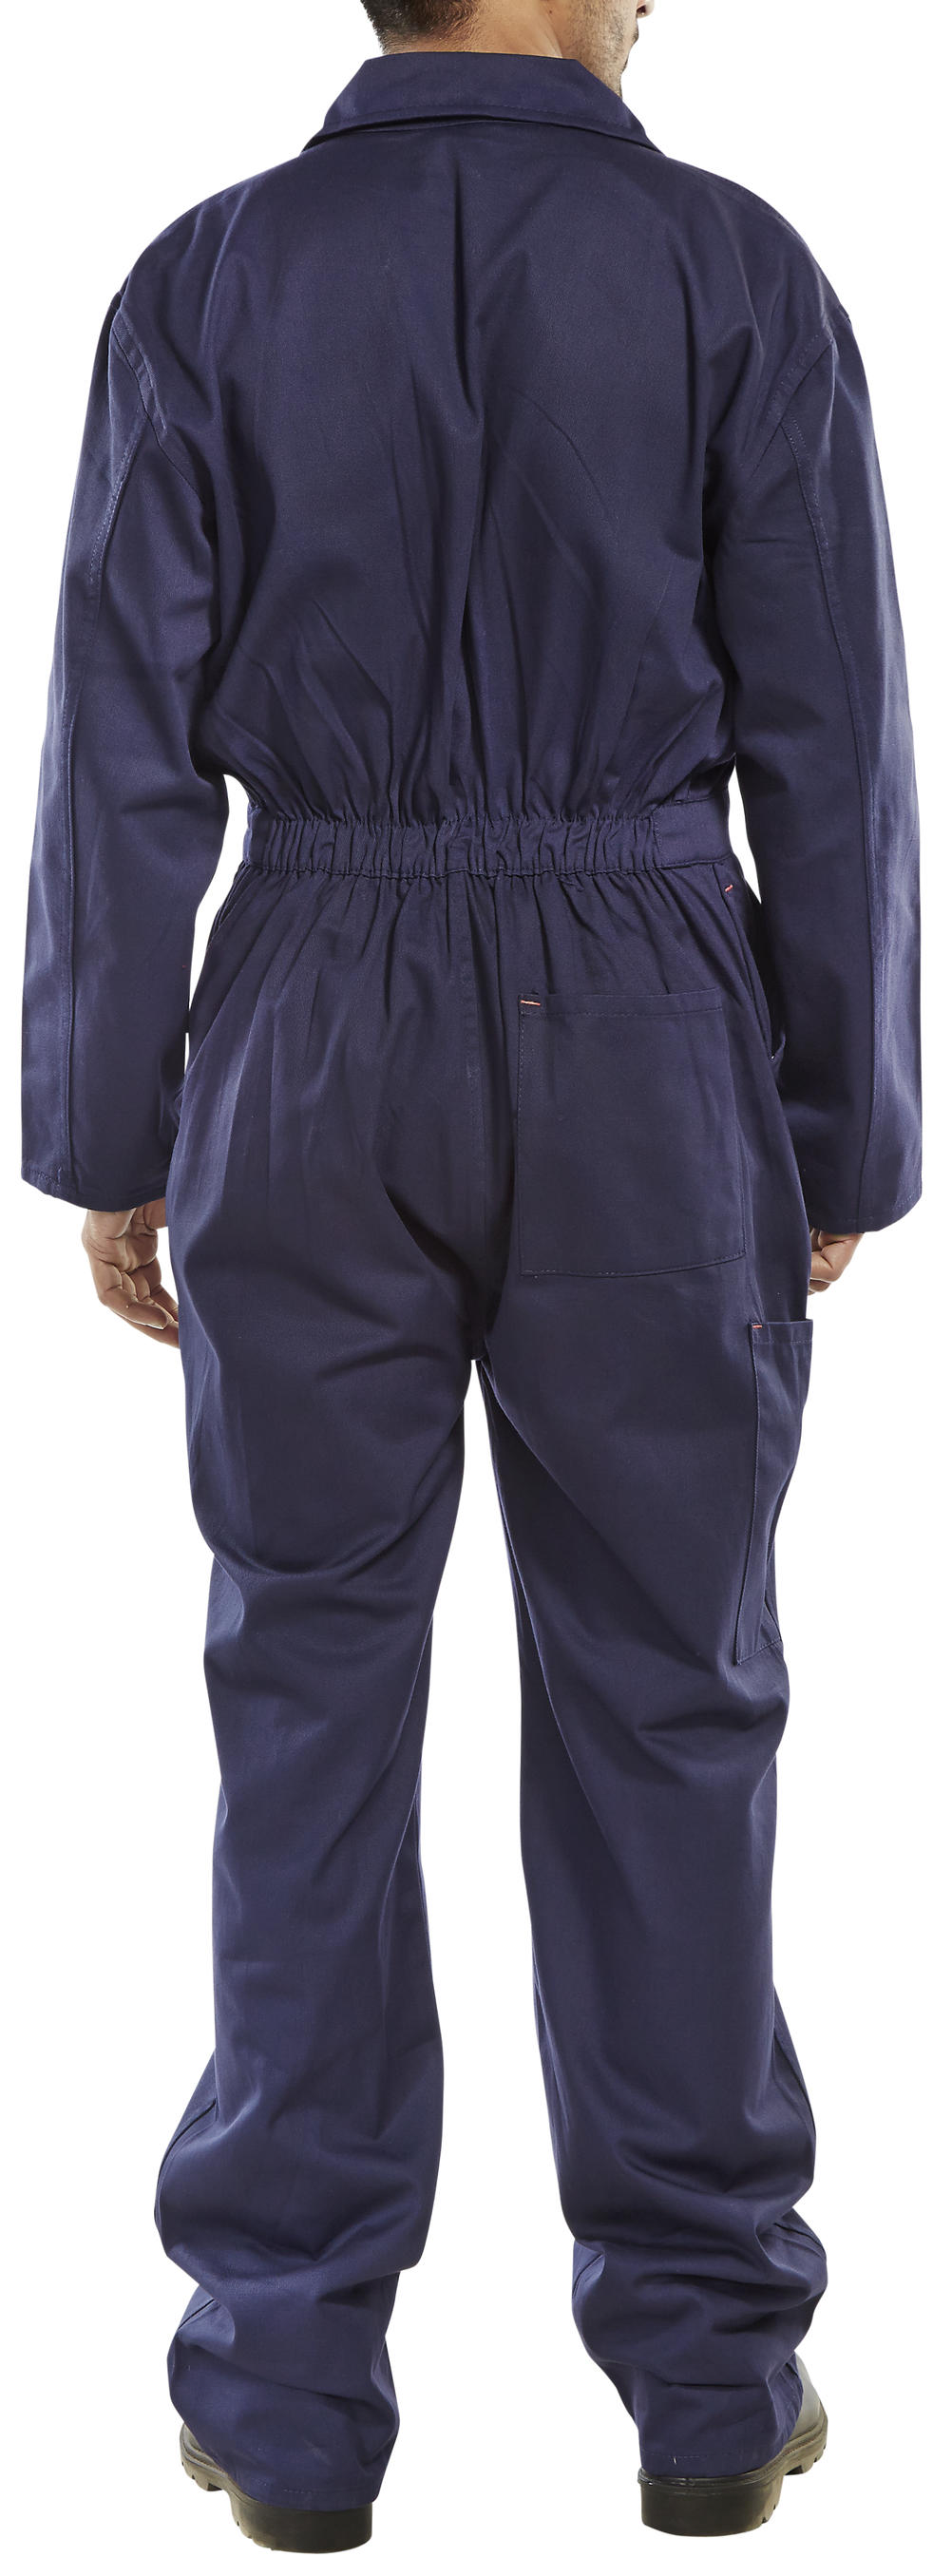 CLICK COTTON DRILL BOILERSUIT - CDBS